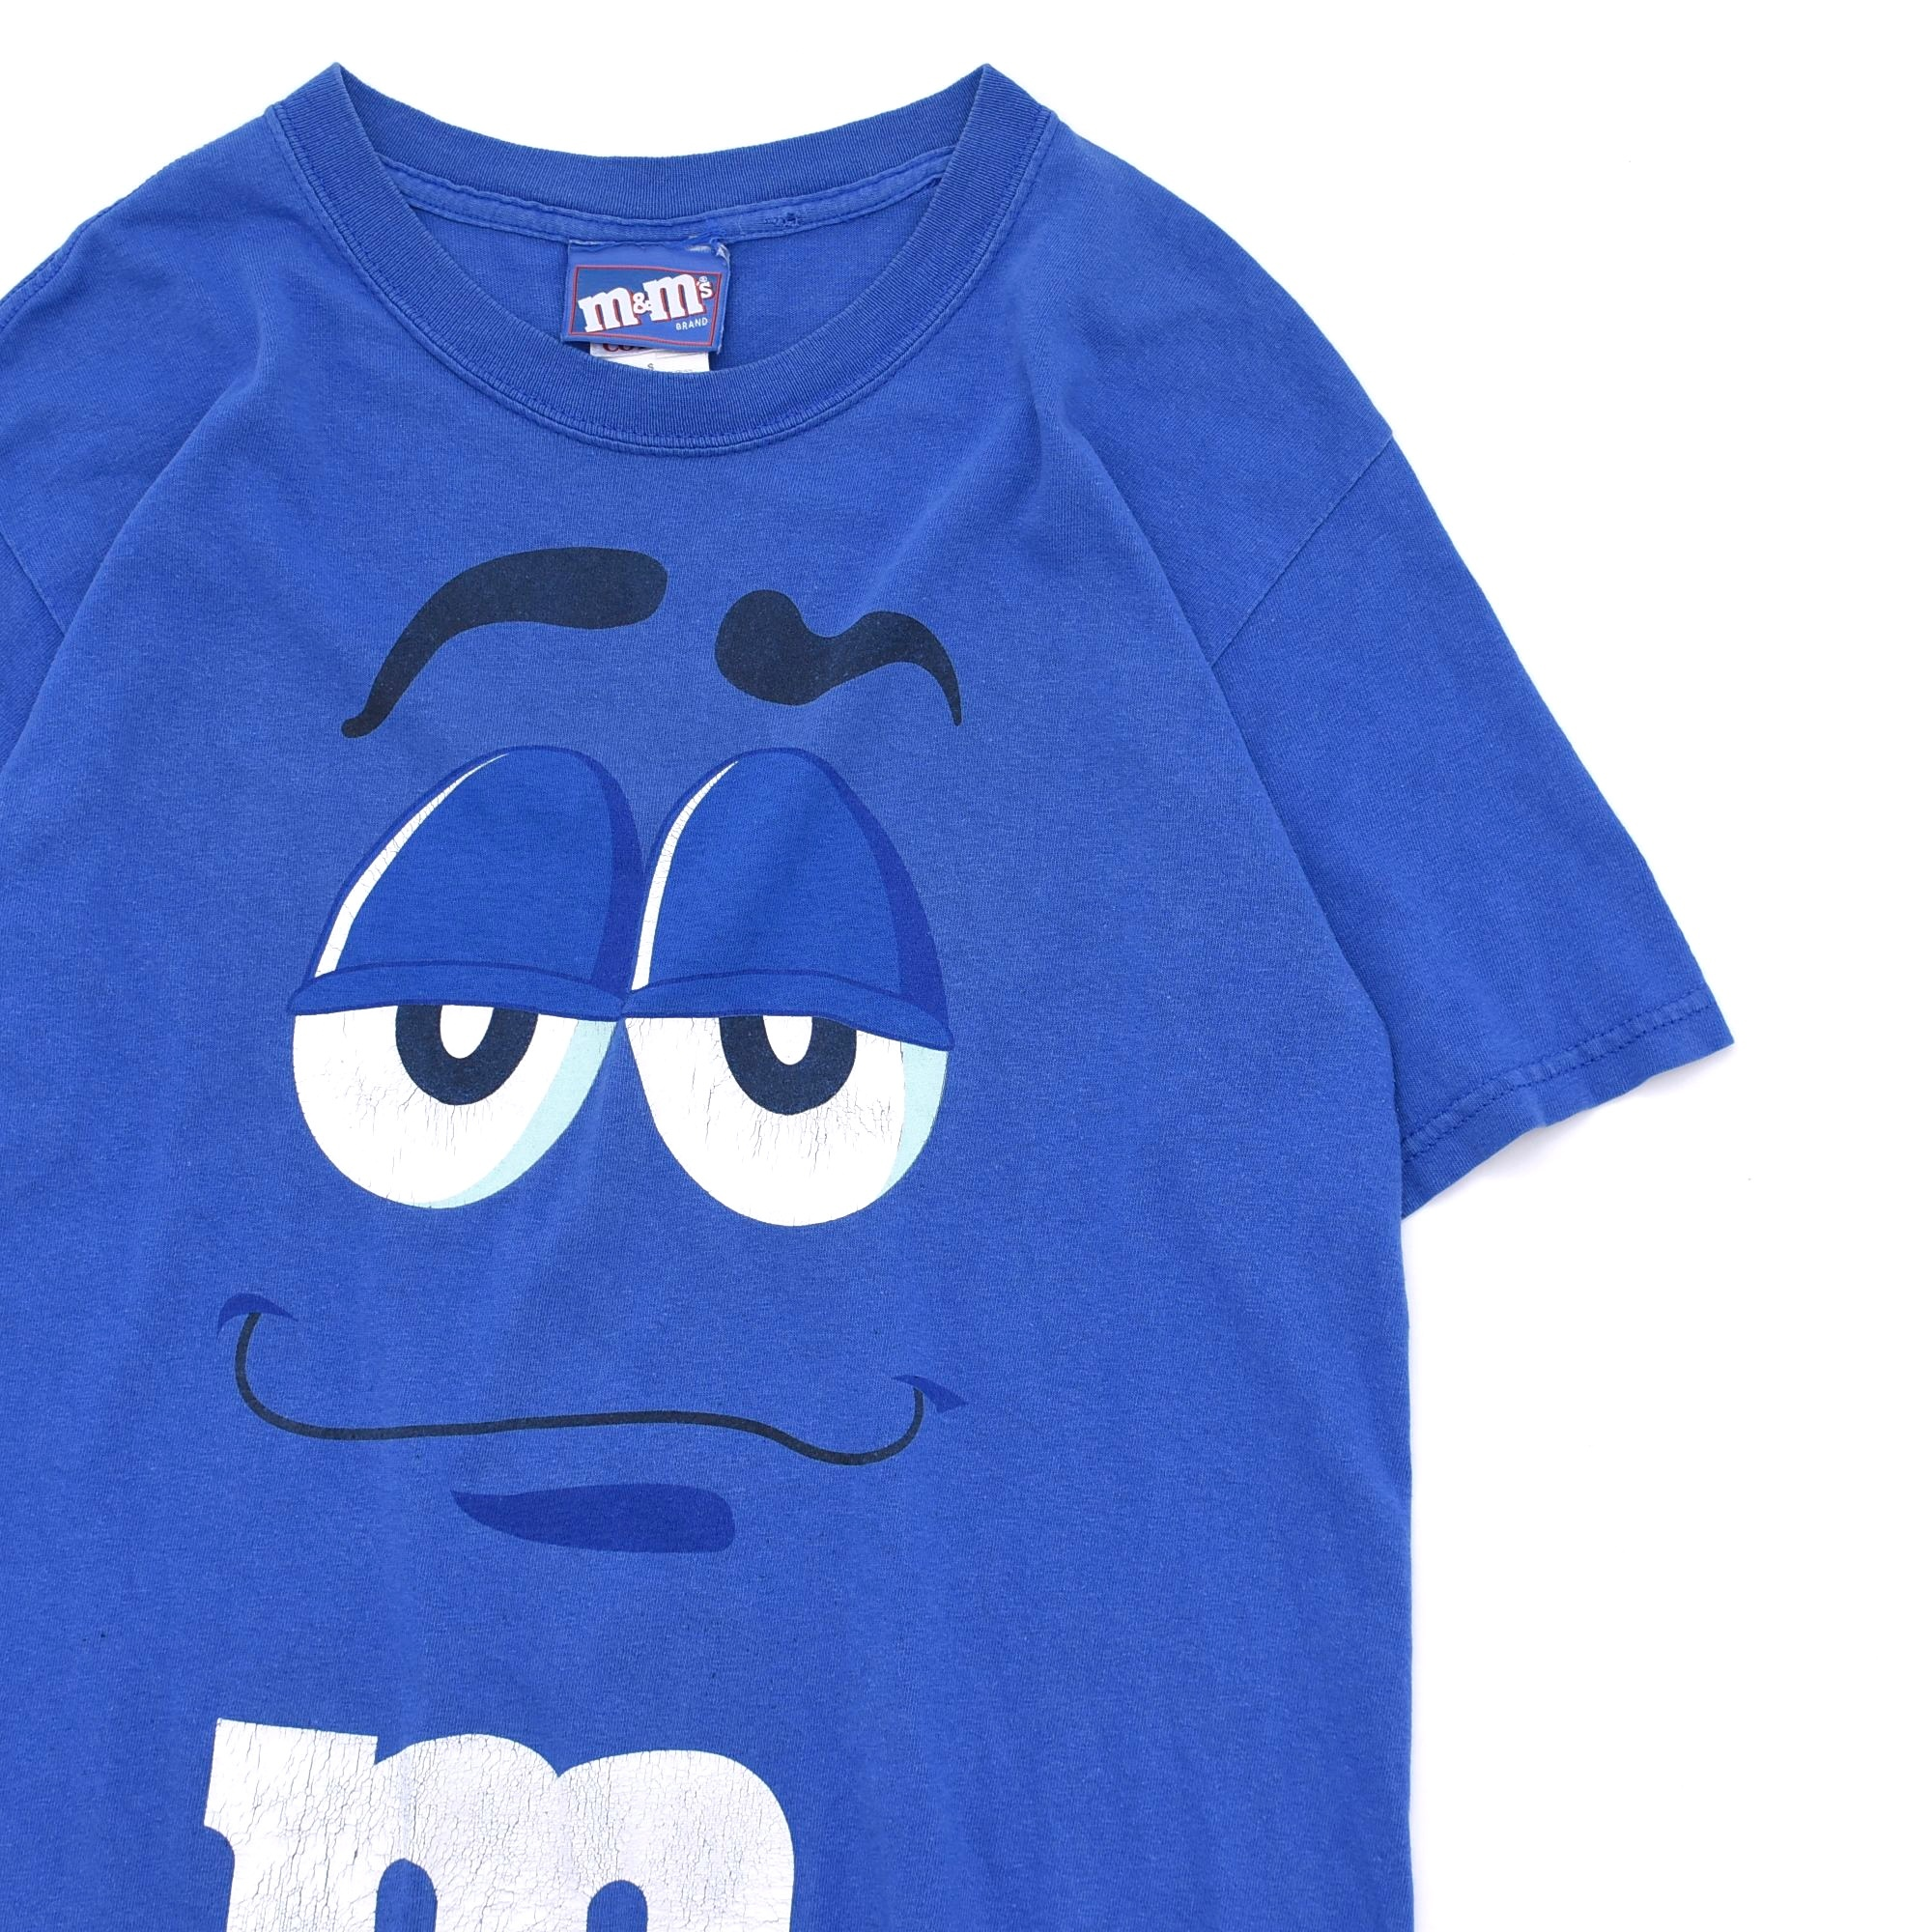 00's m&m's BLULE face print T-shirt Made in MEXICO